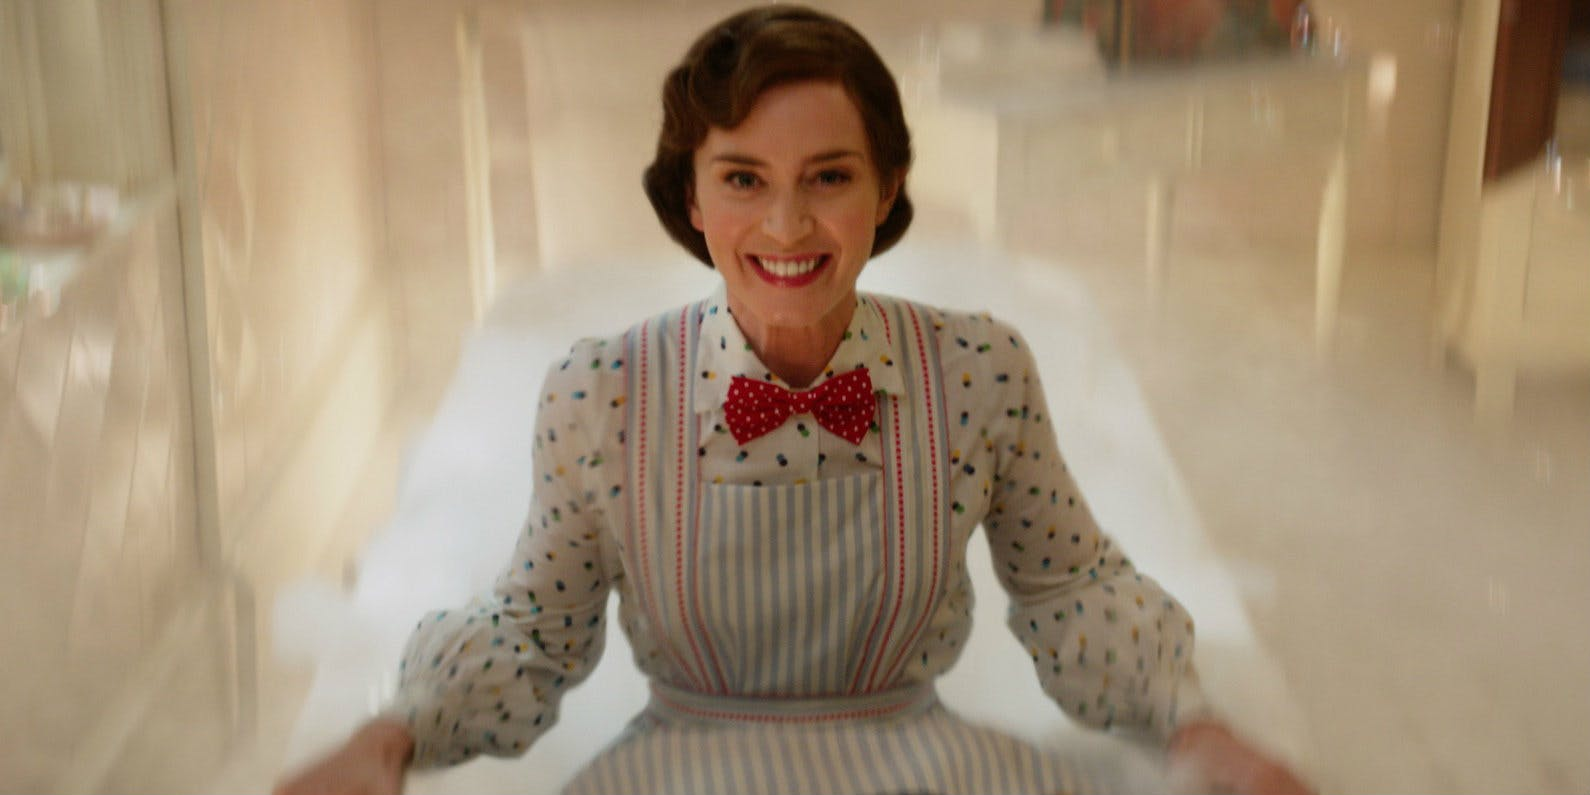 Newest Mary Poppins Returns trailer crammed full of Mary Poppins screenshot